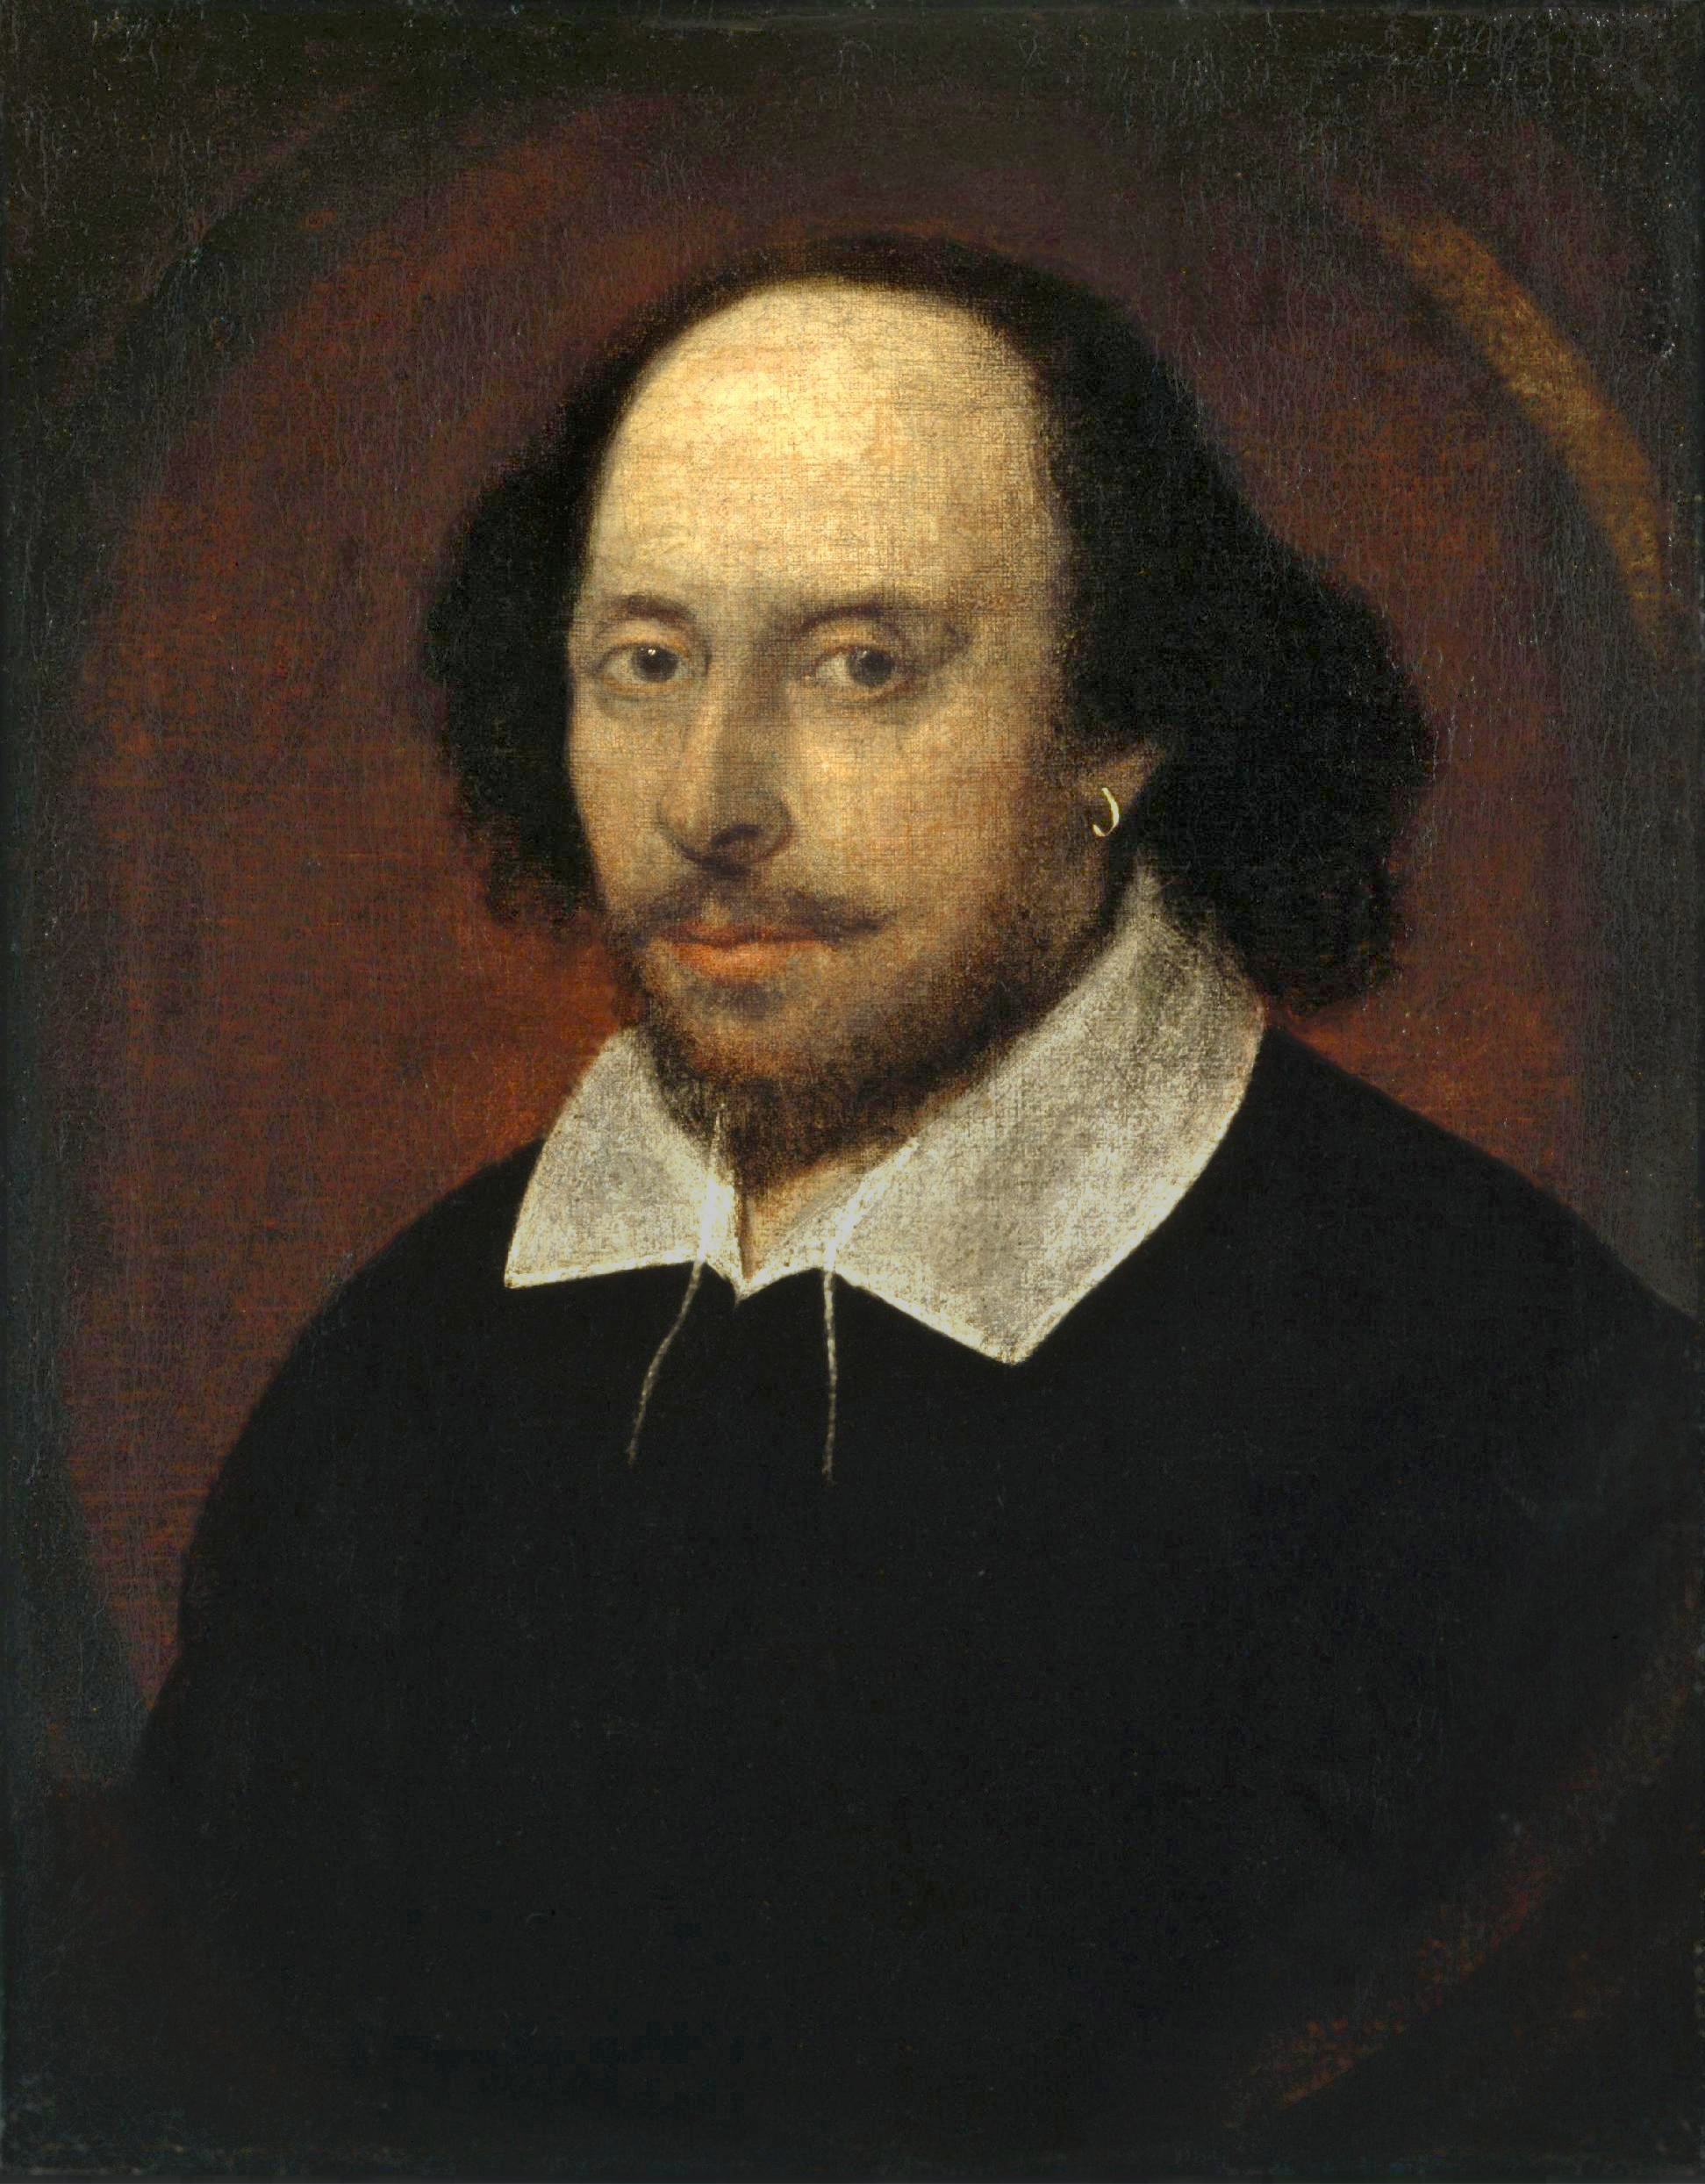 a28169430031b99c6329c8d1484dfe58 2 - Shakespeare: The World as Stage